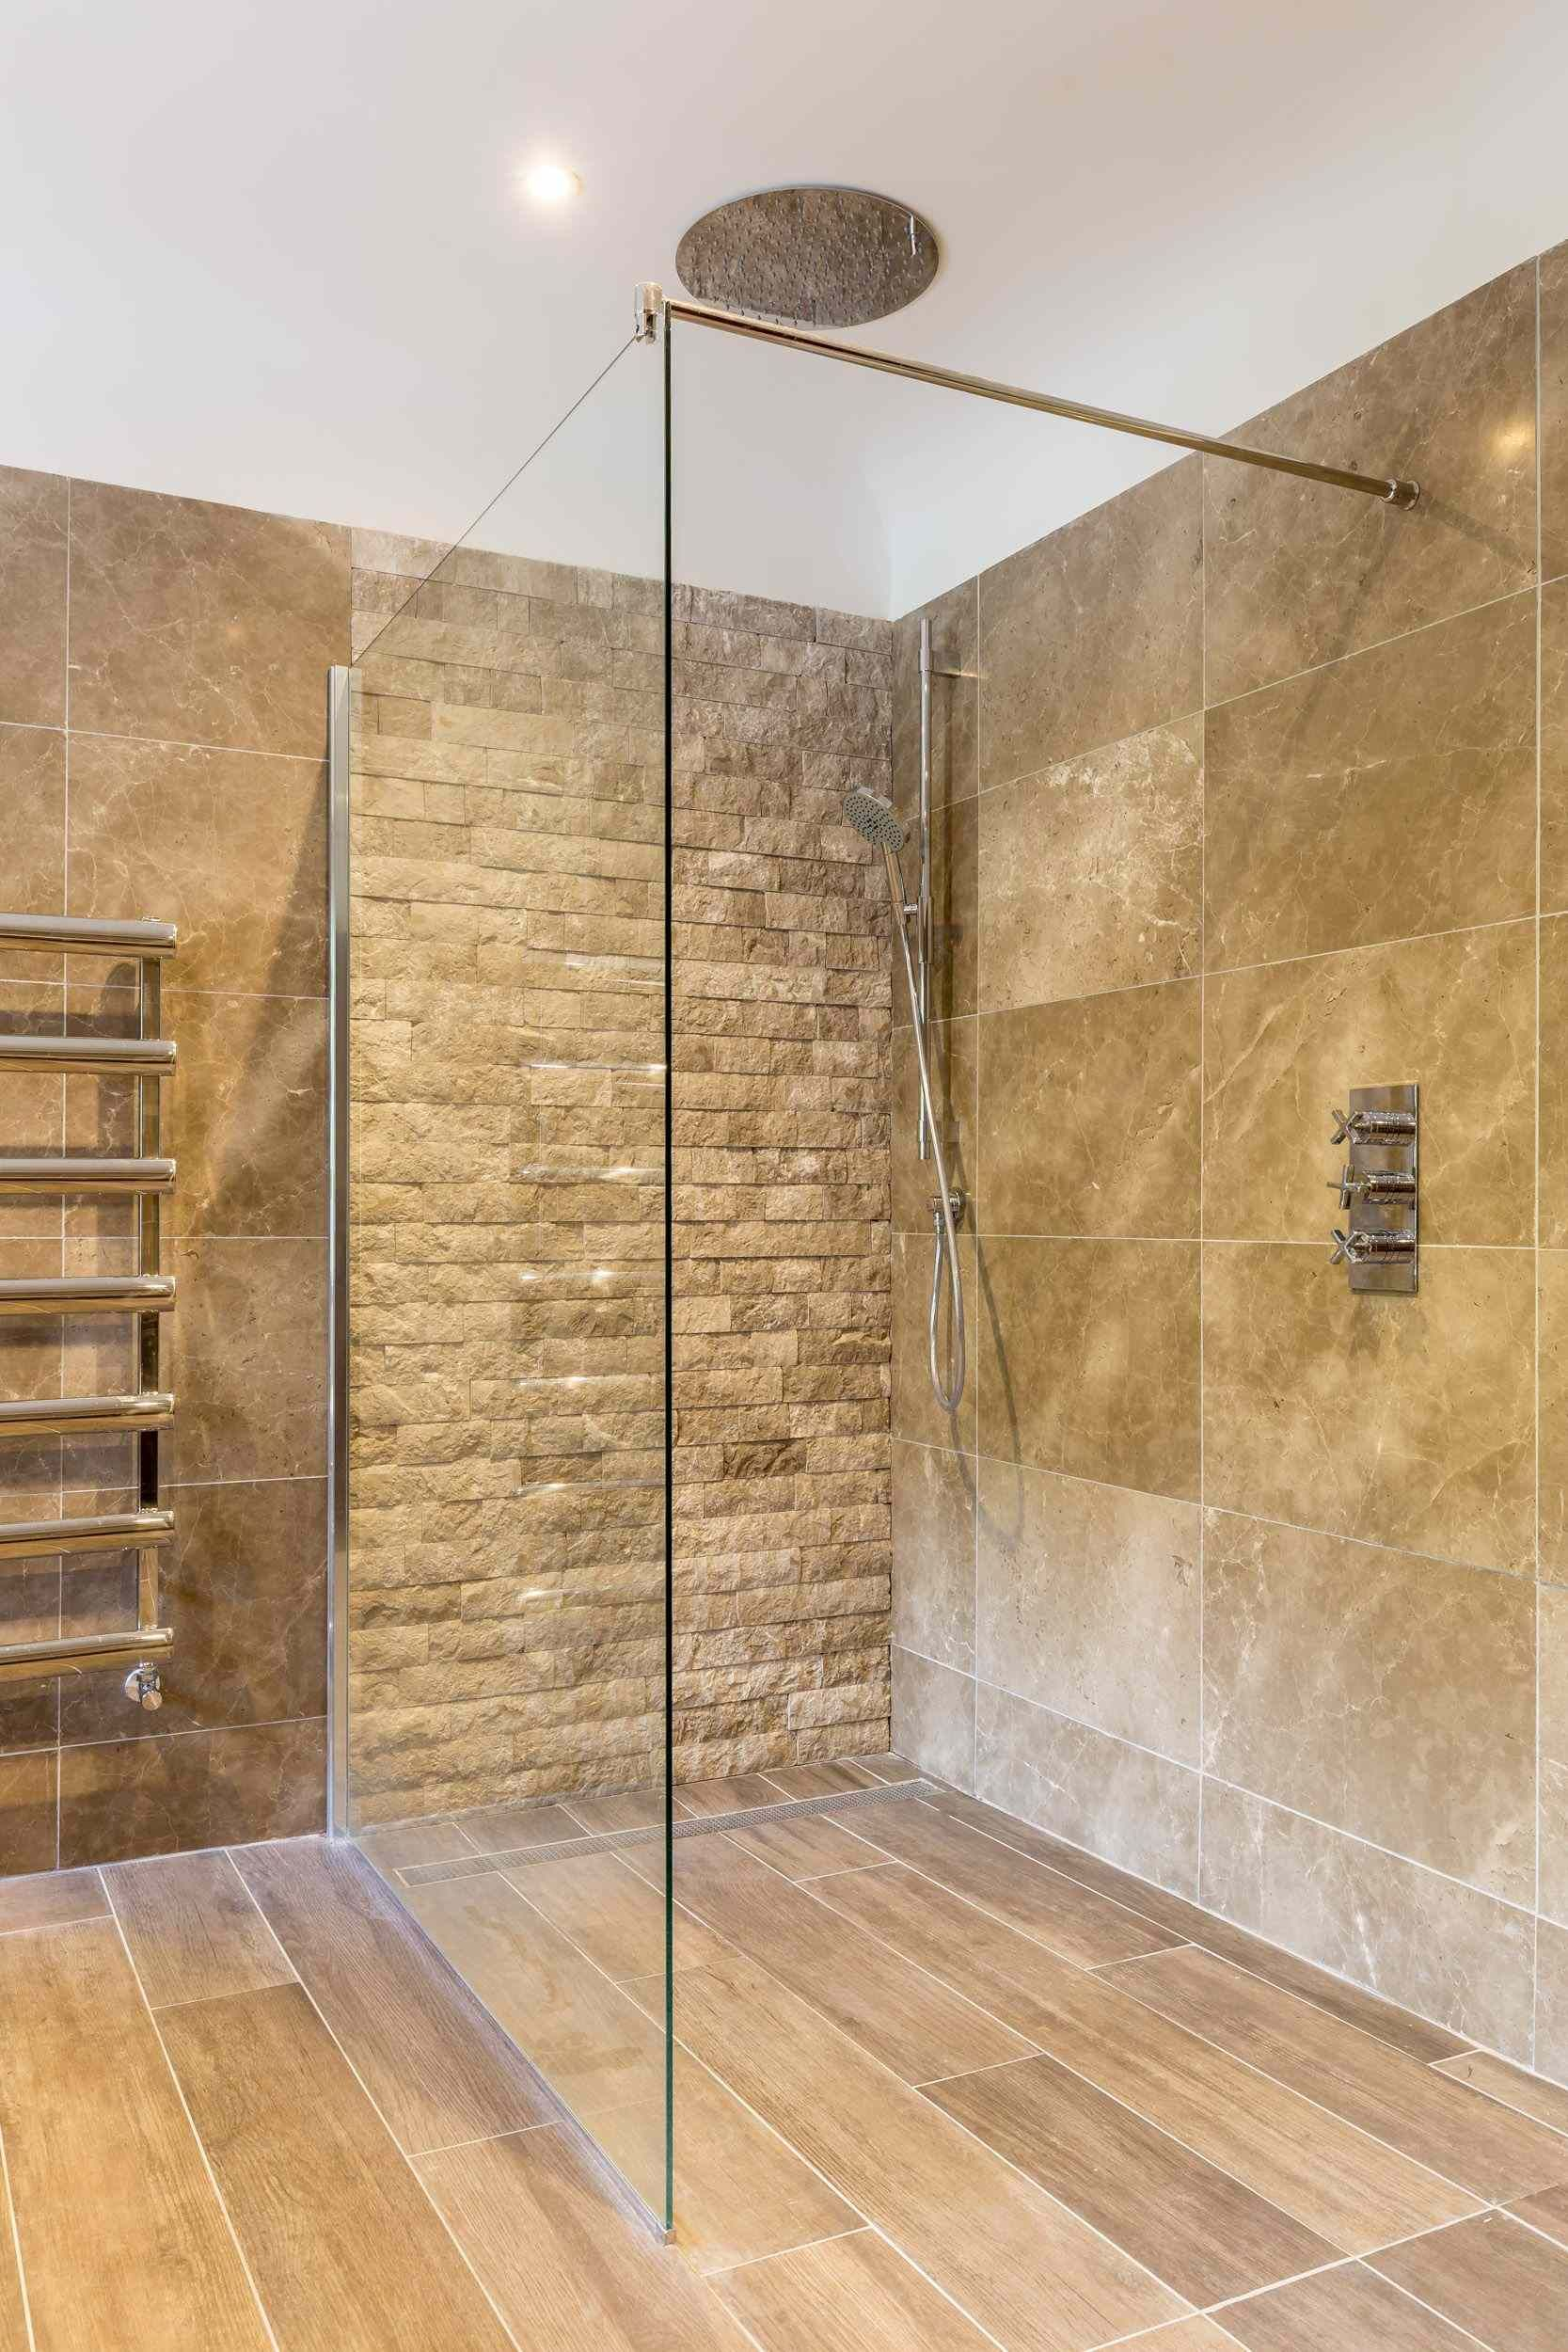 39 Contemporary Hallway Tiles Shower Tile Contemporary Hallway Wall Tiles